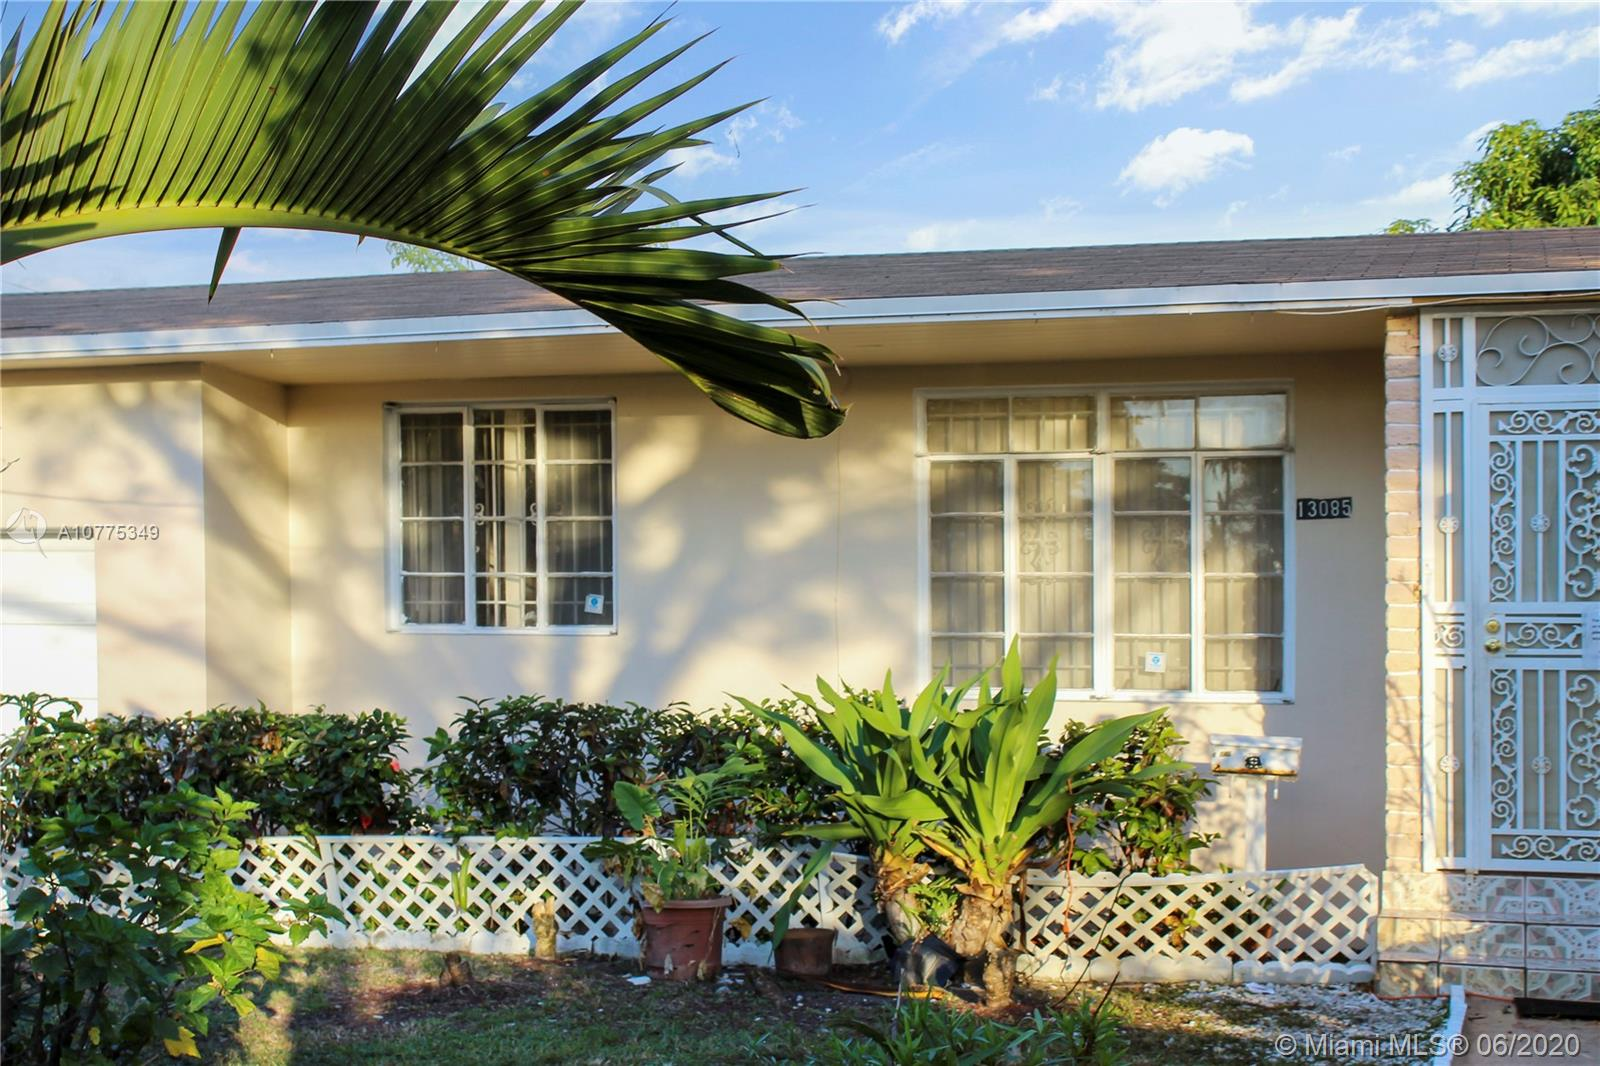 Undisclosed For Sale A10775349, FL